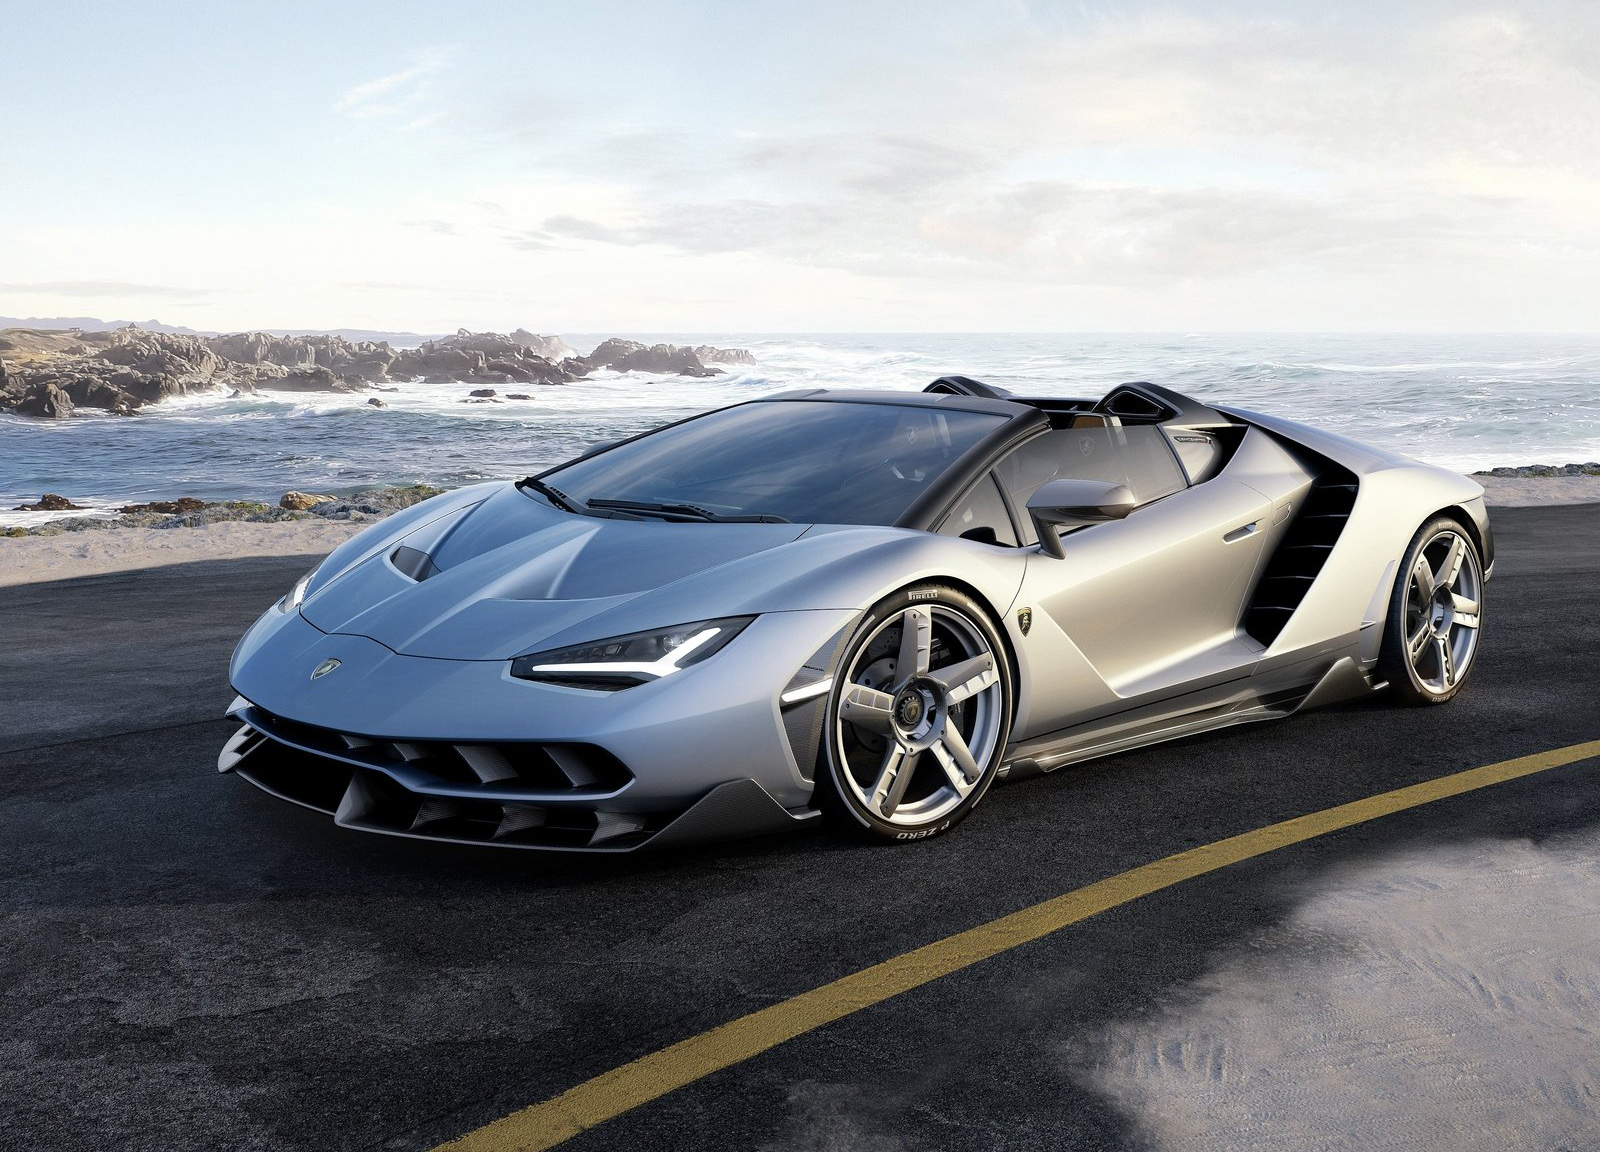 2016 Pebble Beach - Lamborghini Centenario Roadster